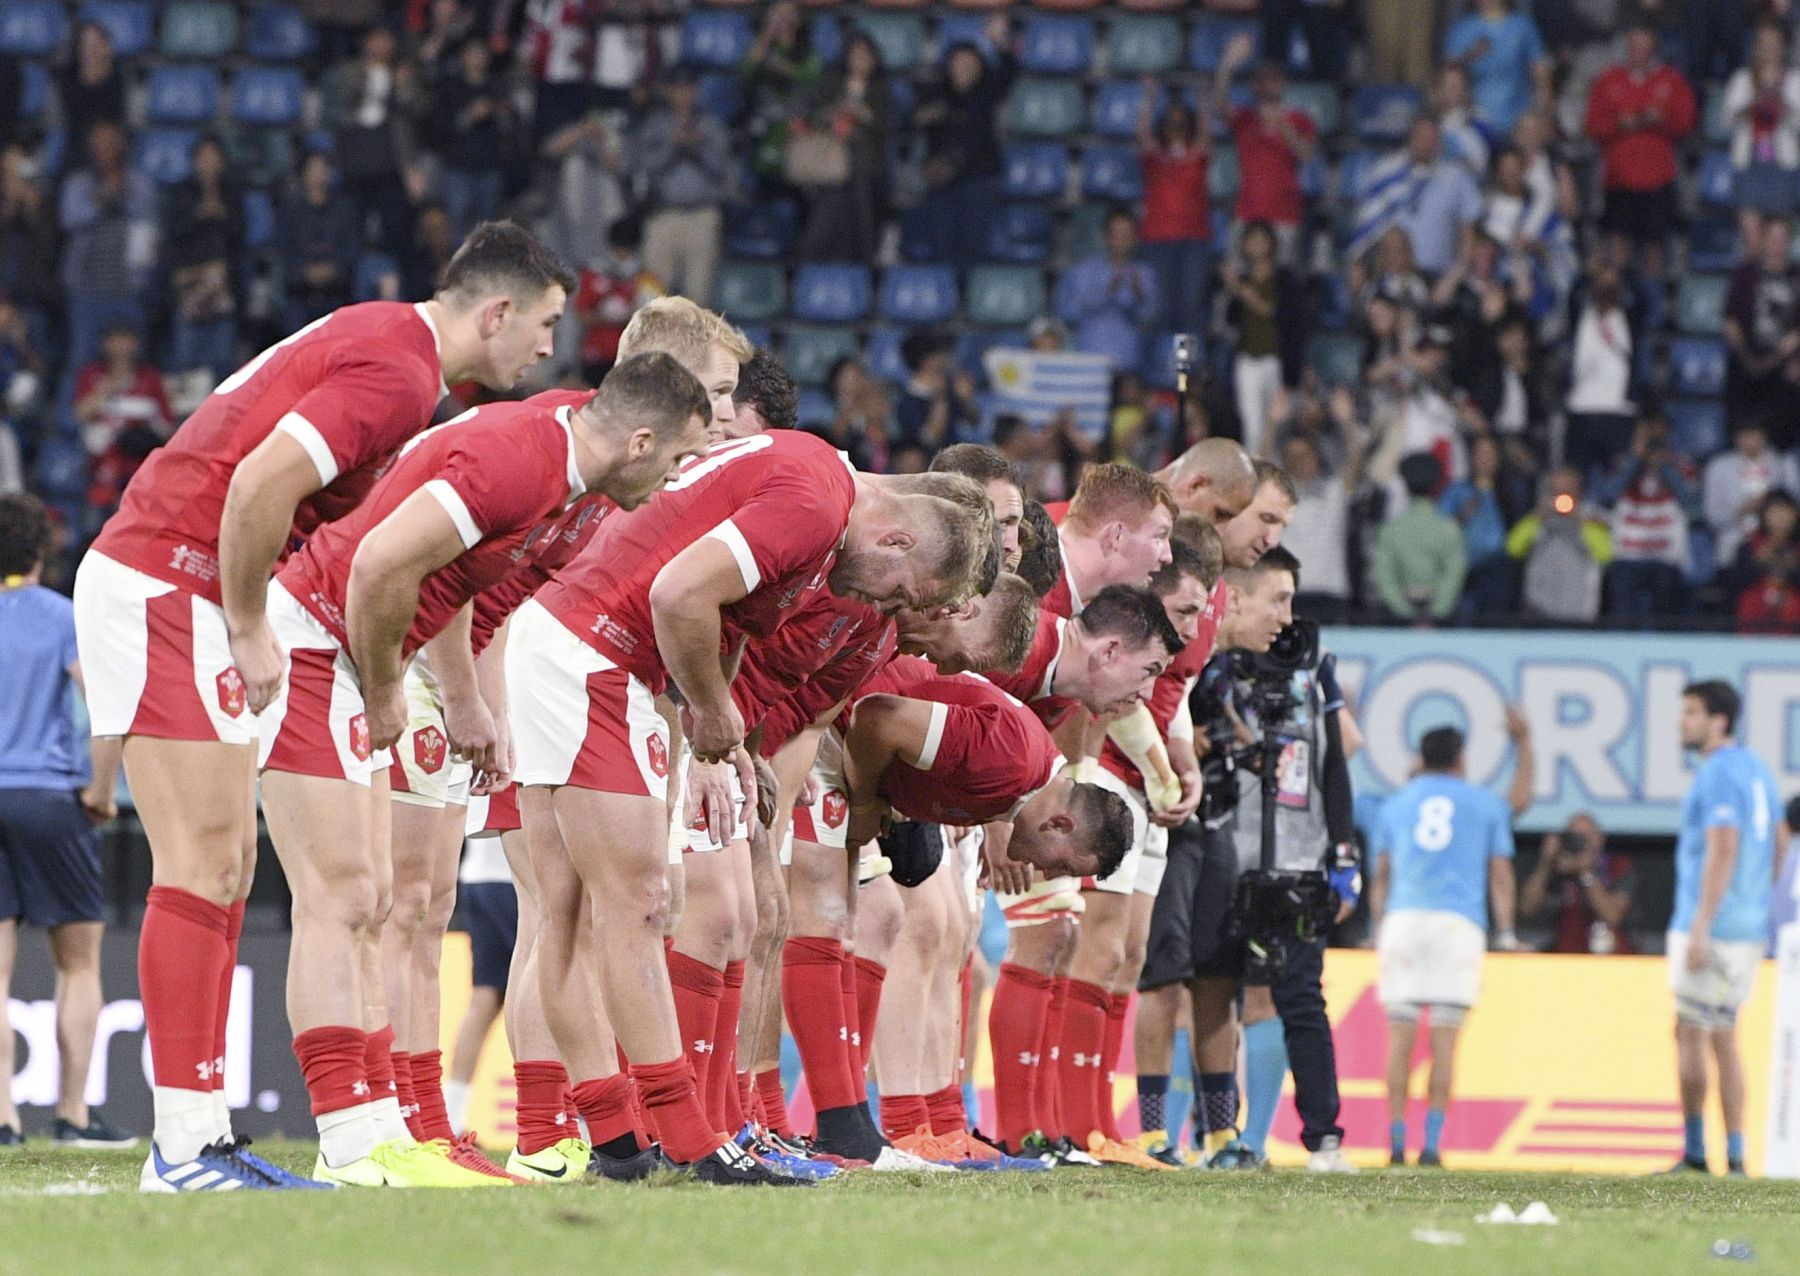 Rugby World Cup 2019 in Japan Wales Team 003